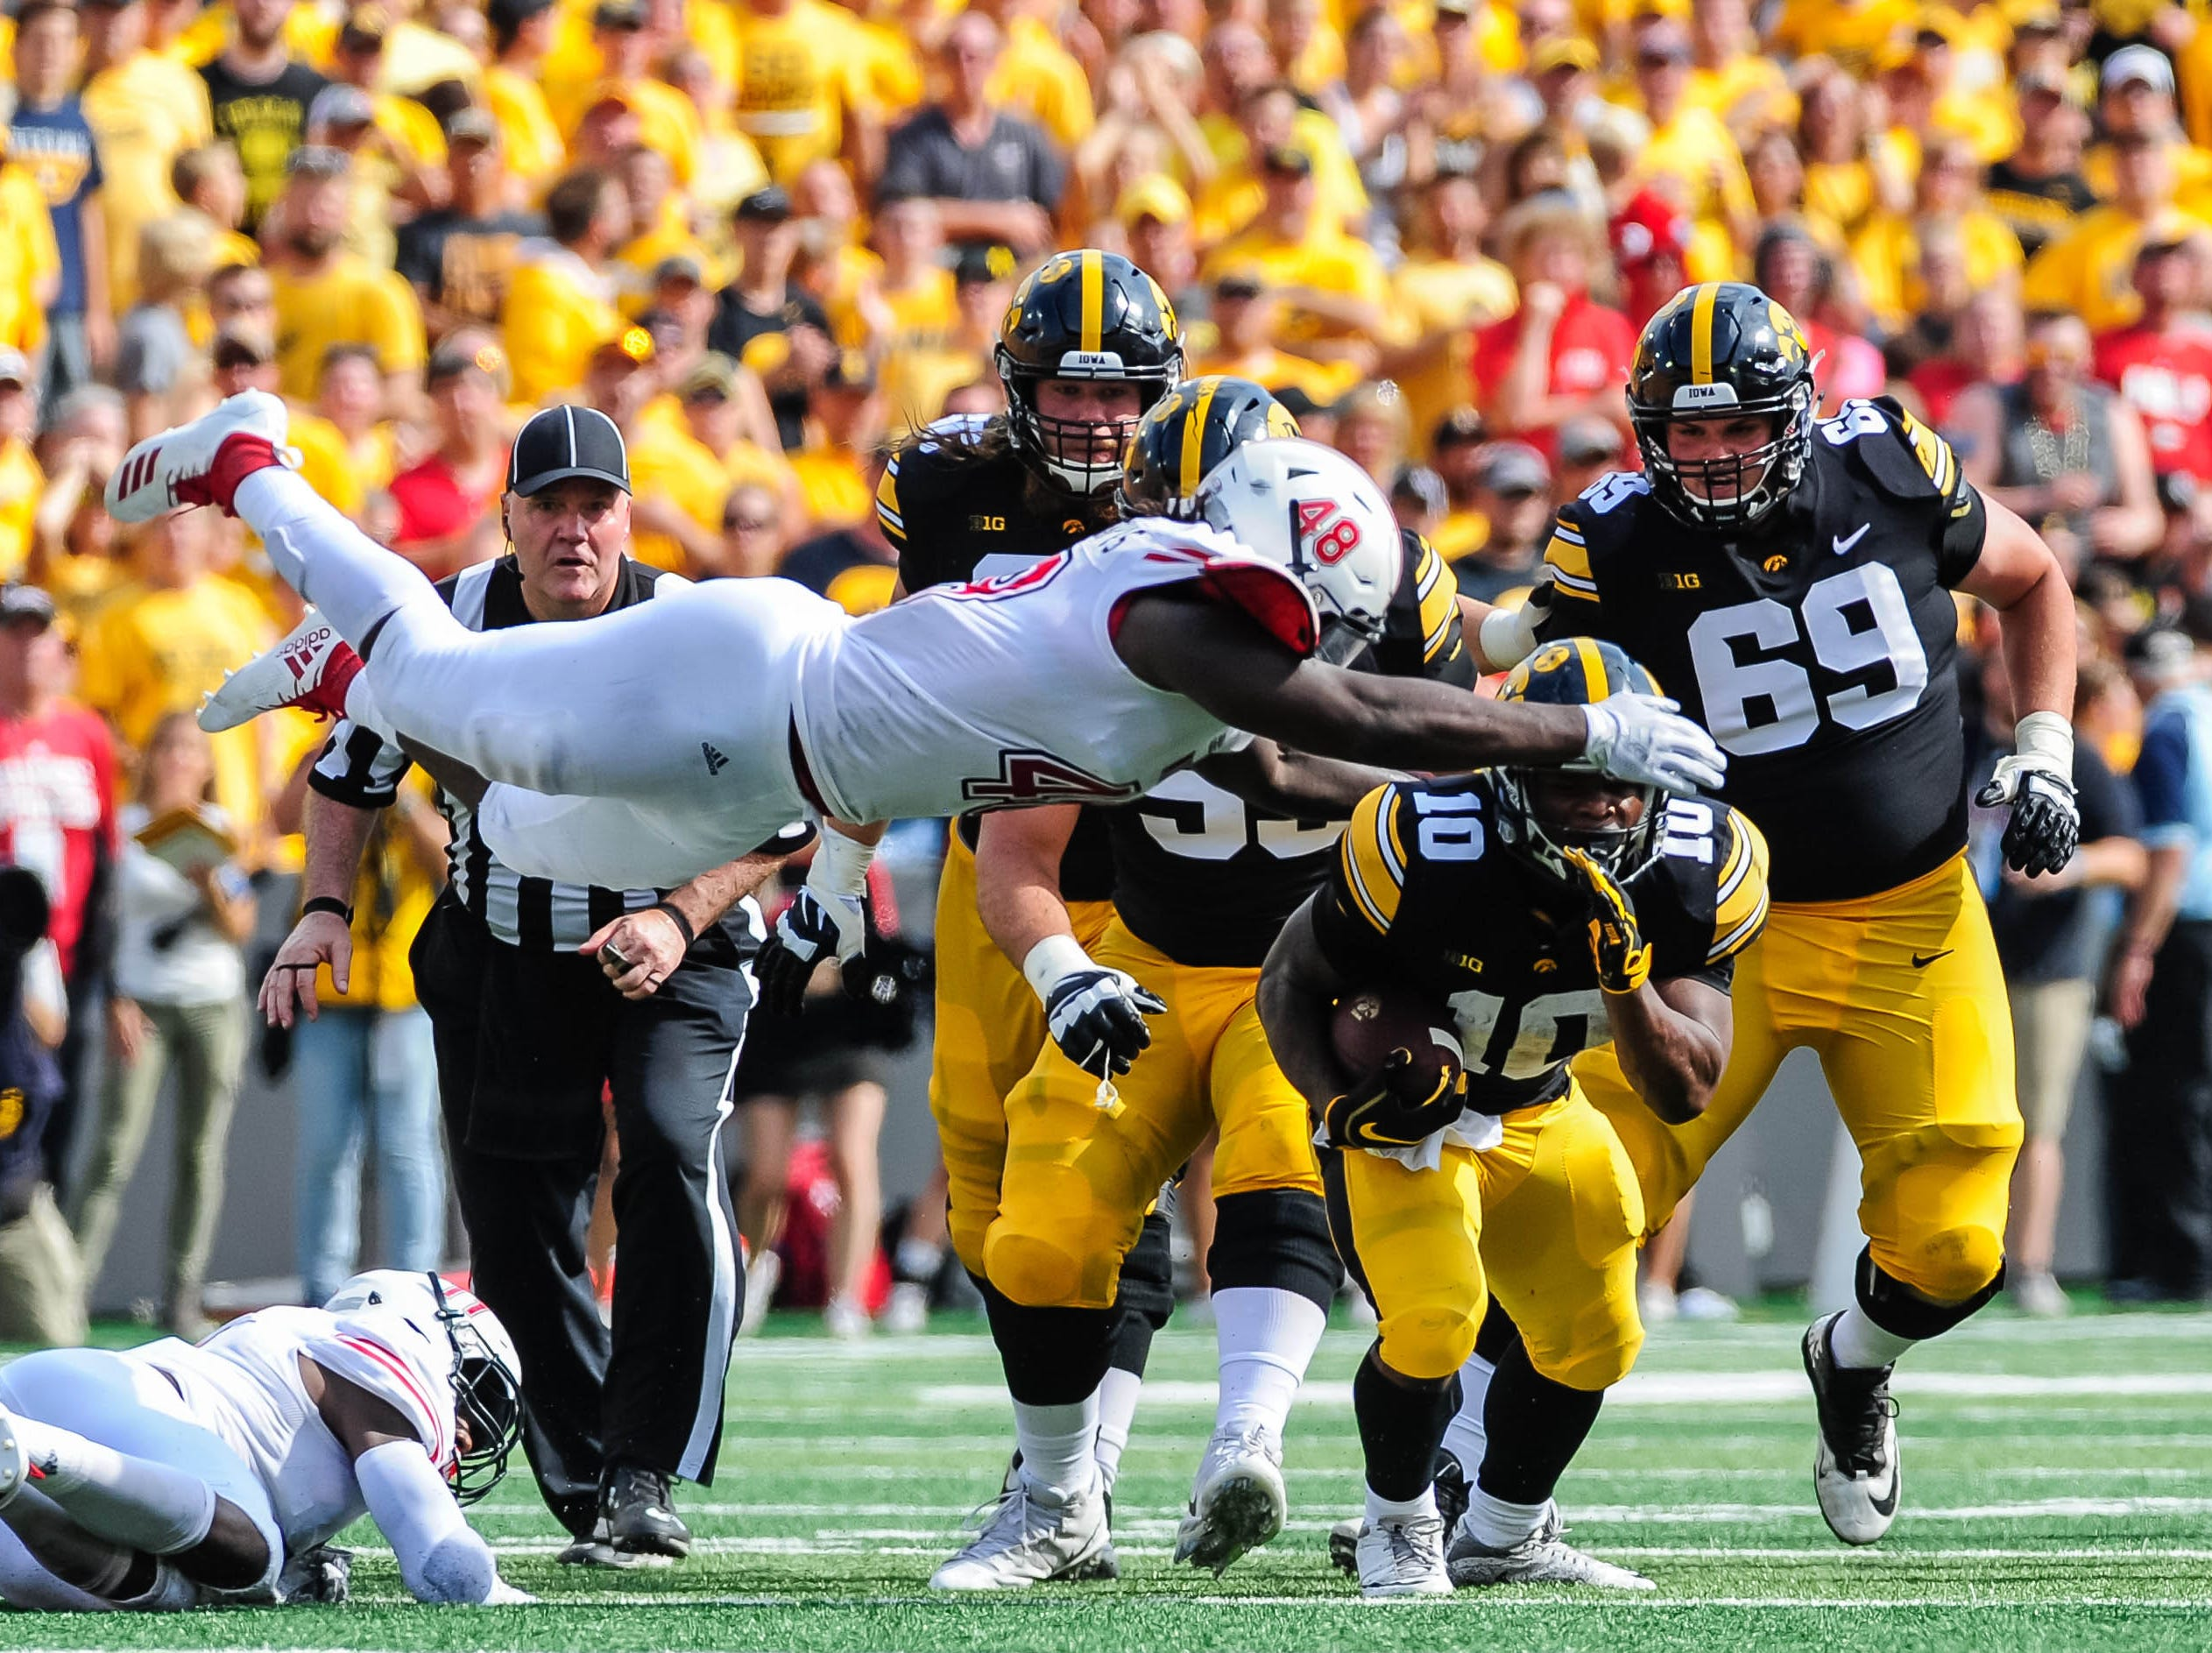 Northern Illinois Huskies linebacker Antonio Jones-Davis (48) leaps to tackle Iowa Hawkeyes running back Mekhi Sargent (10) during the second quarter at Kinnick Stadium.